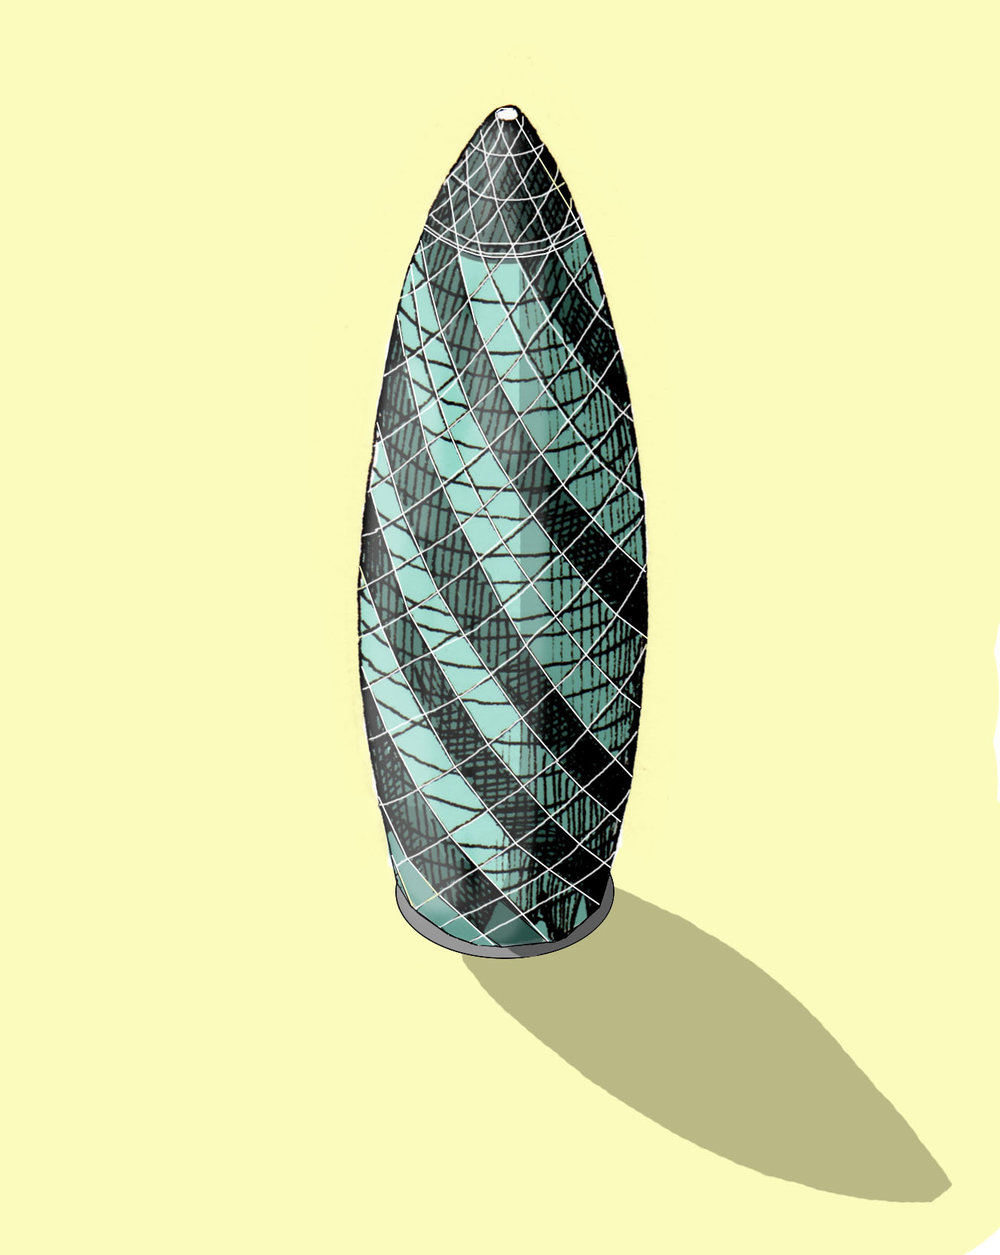 The Gherkin Illustration by Katherine Baxter